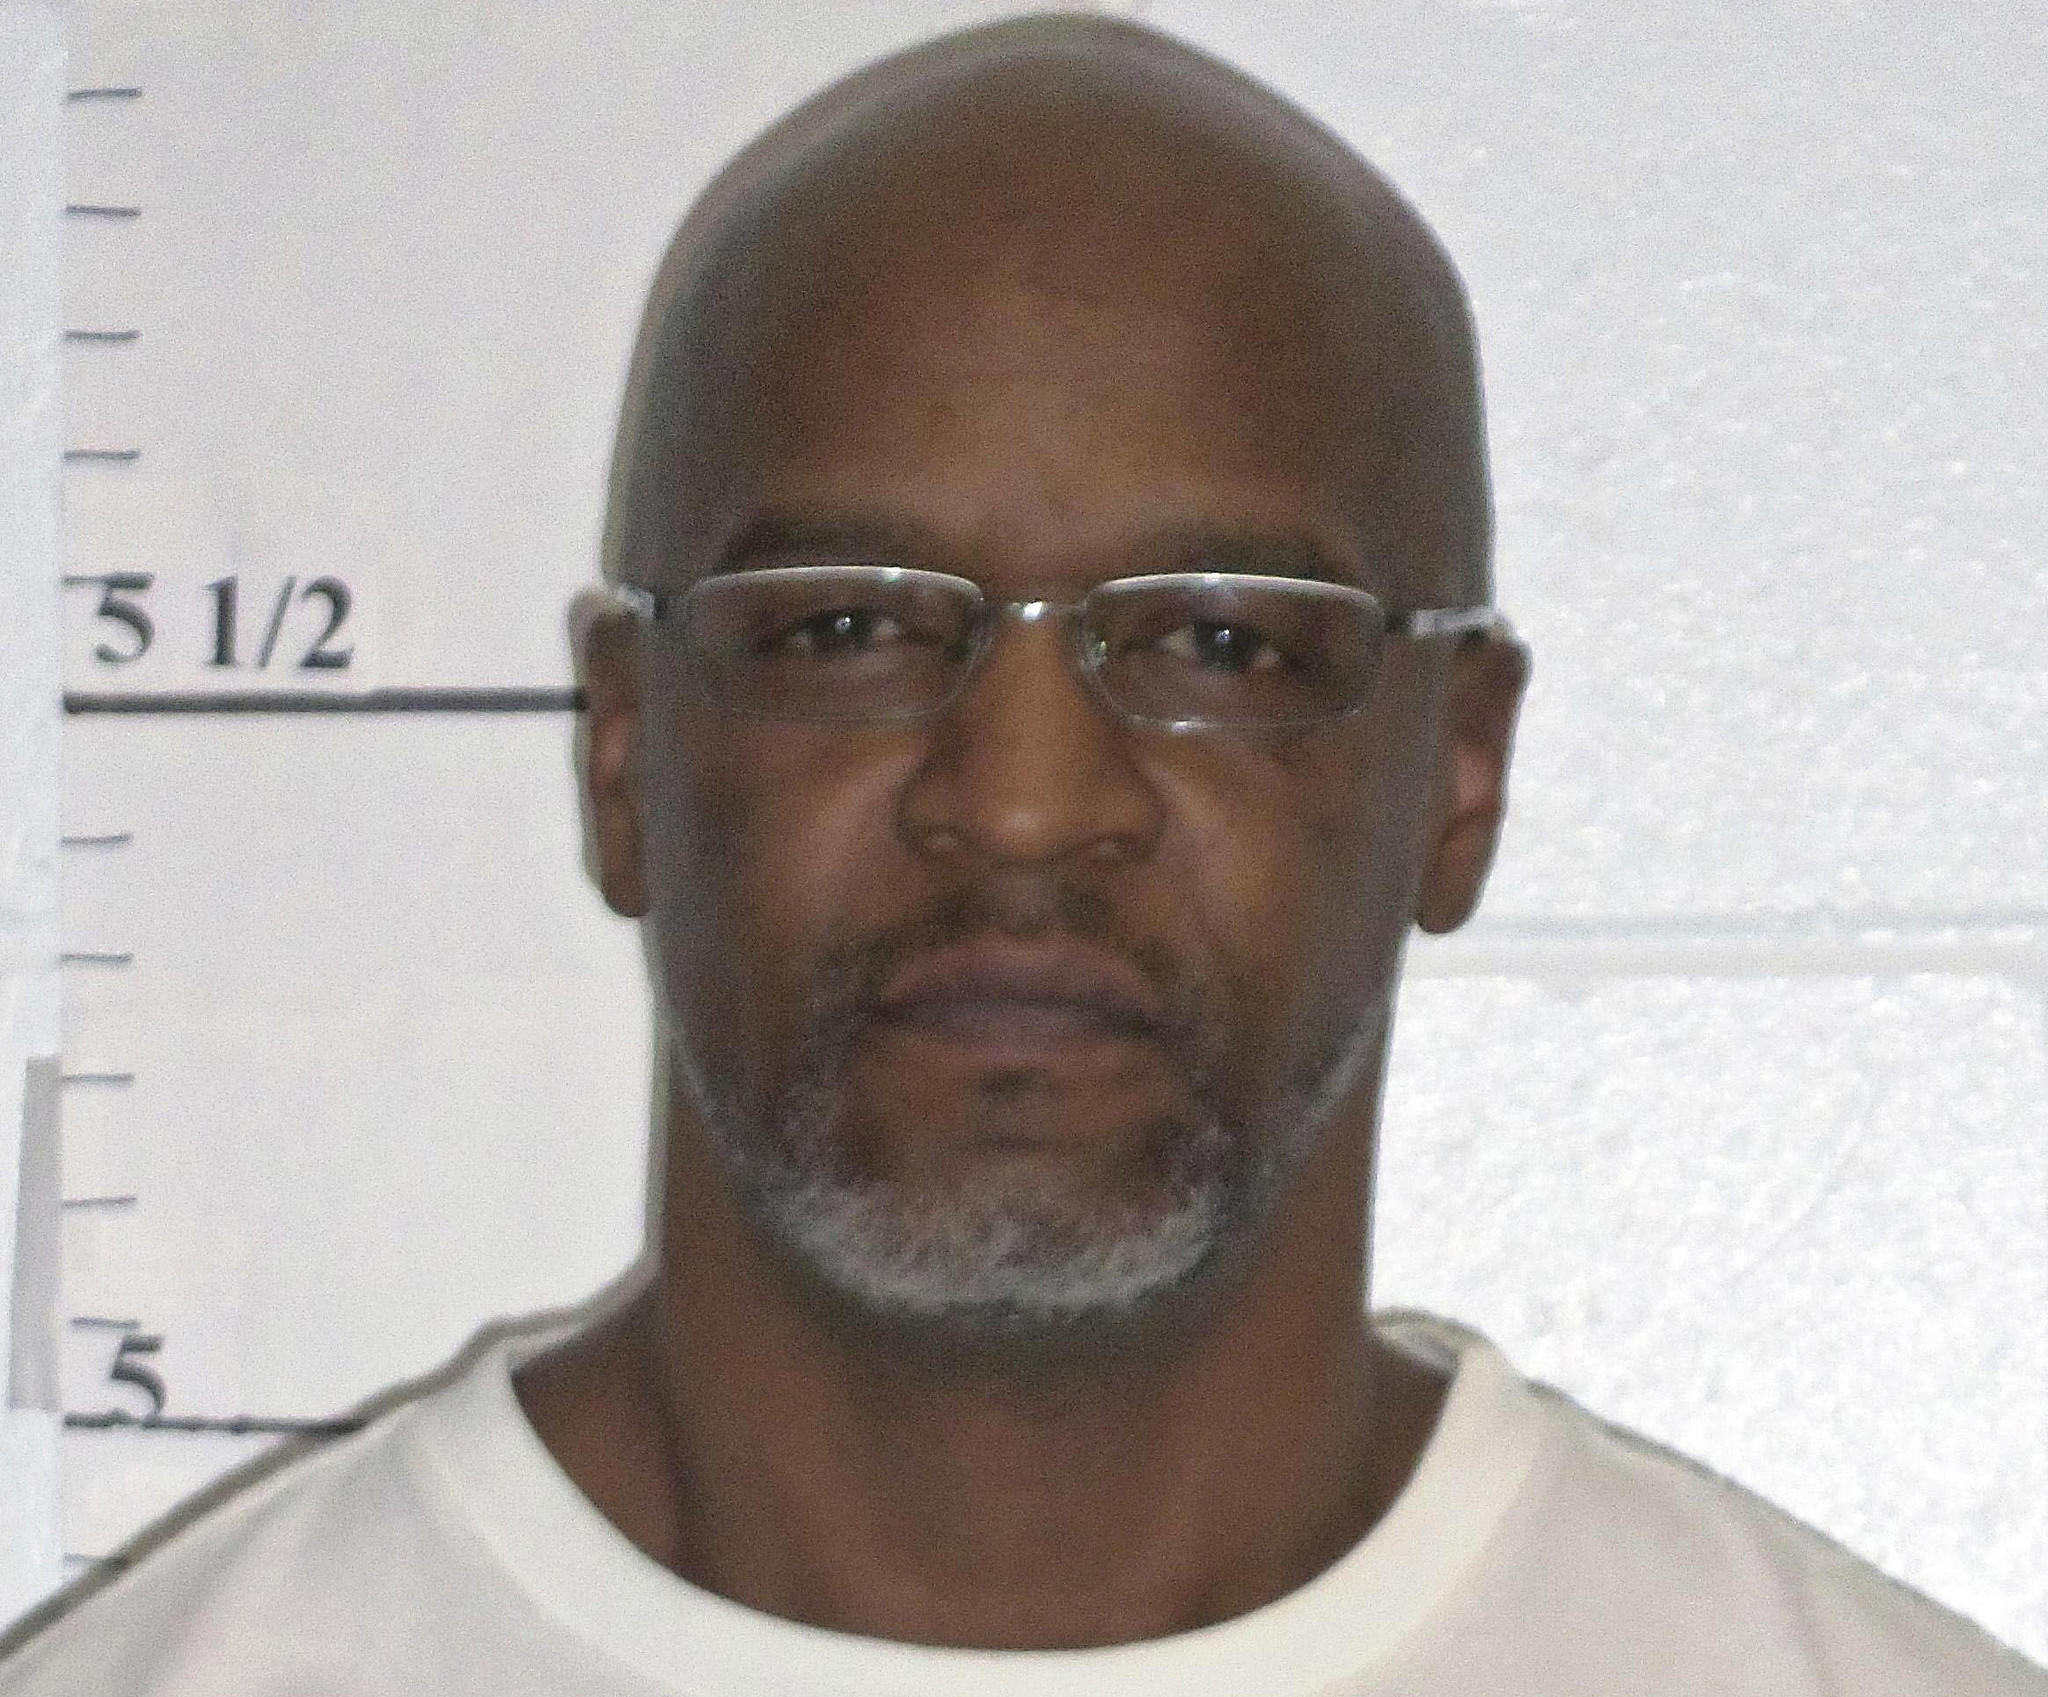 Convicted killer Michael Taylor is shown in this Missouri Department of Corrections photo released on Feb. 25.